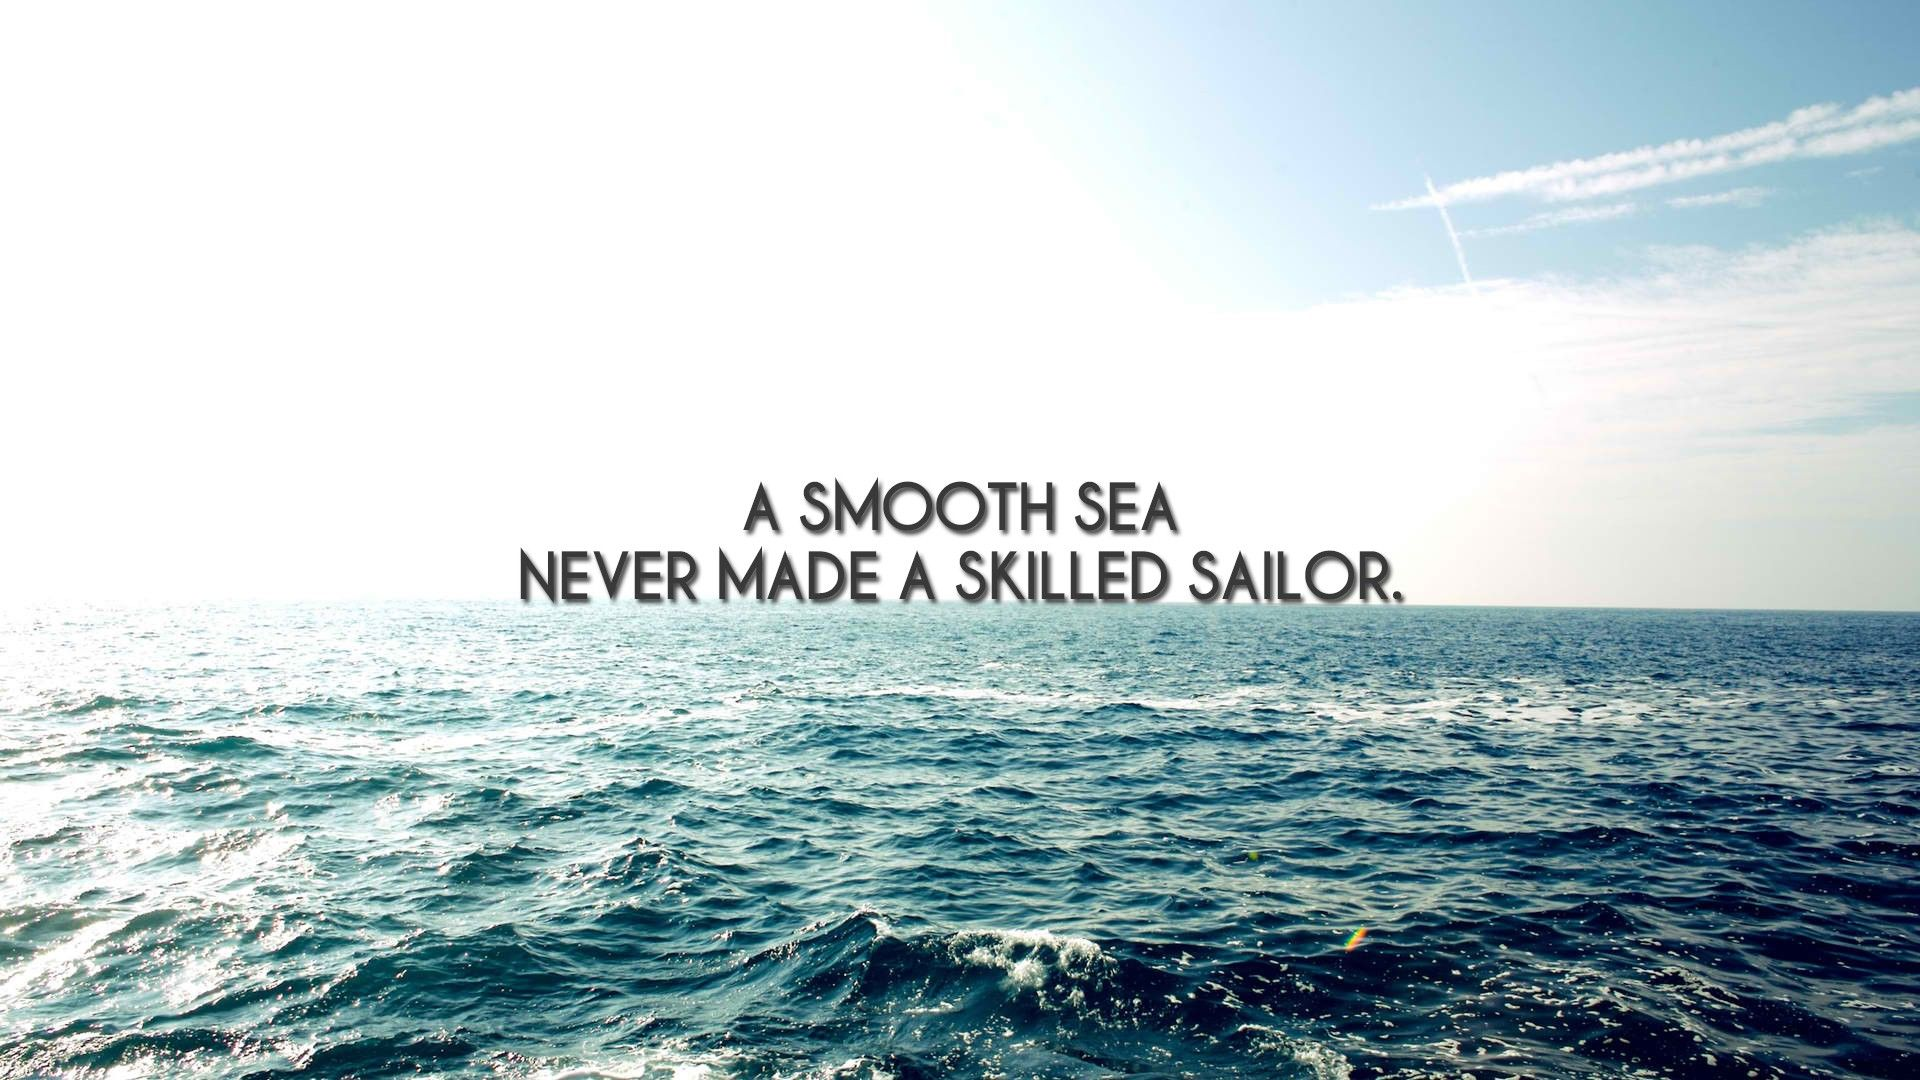 sailor at sea inspirational quote hd wallpaper desktop background